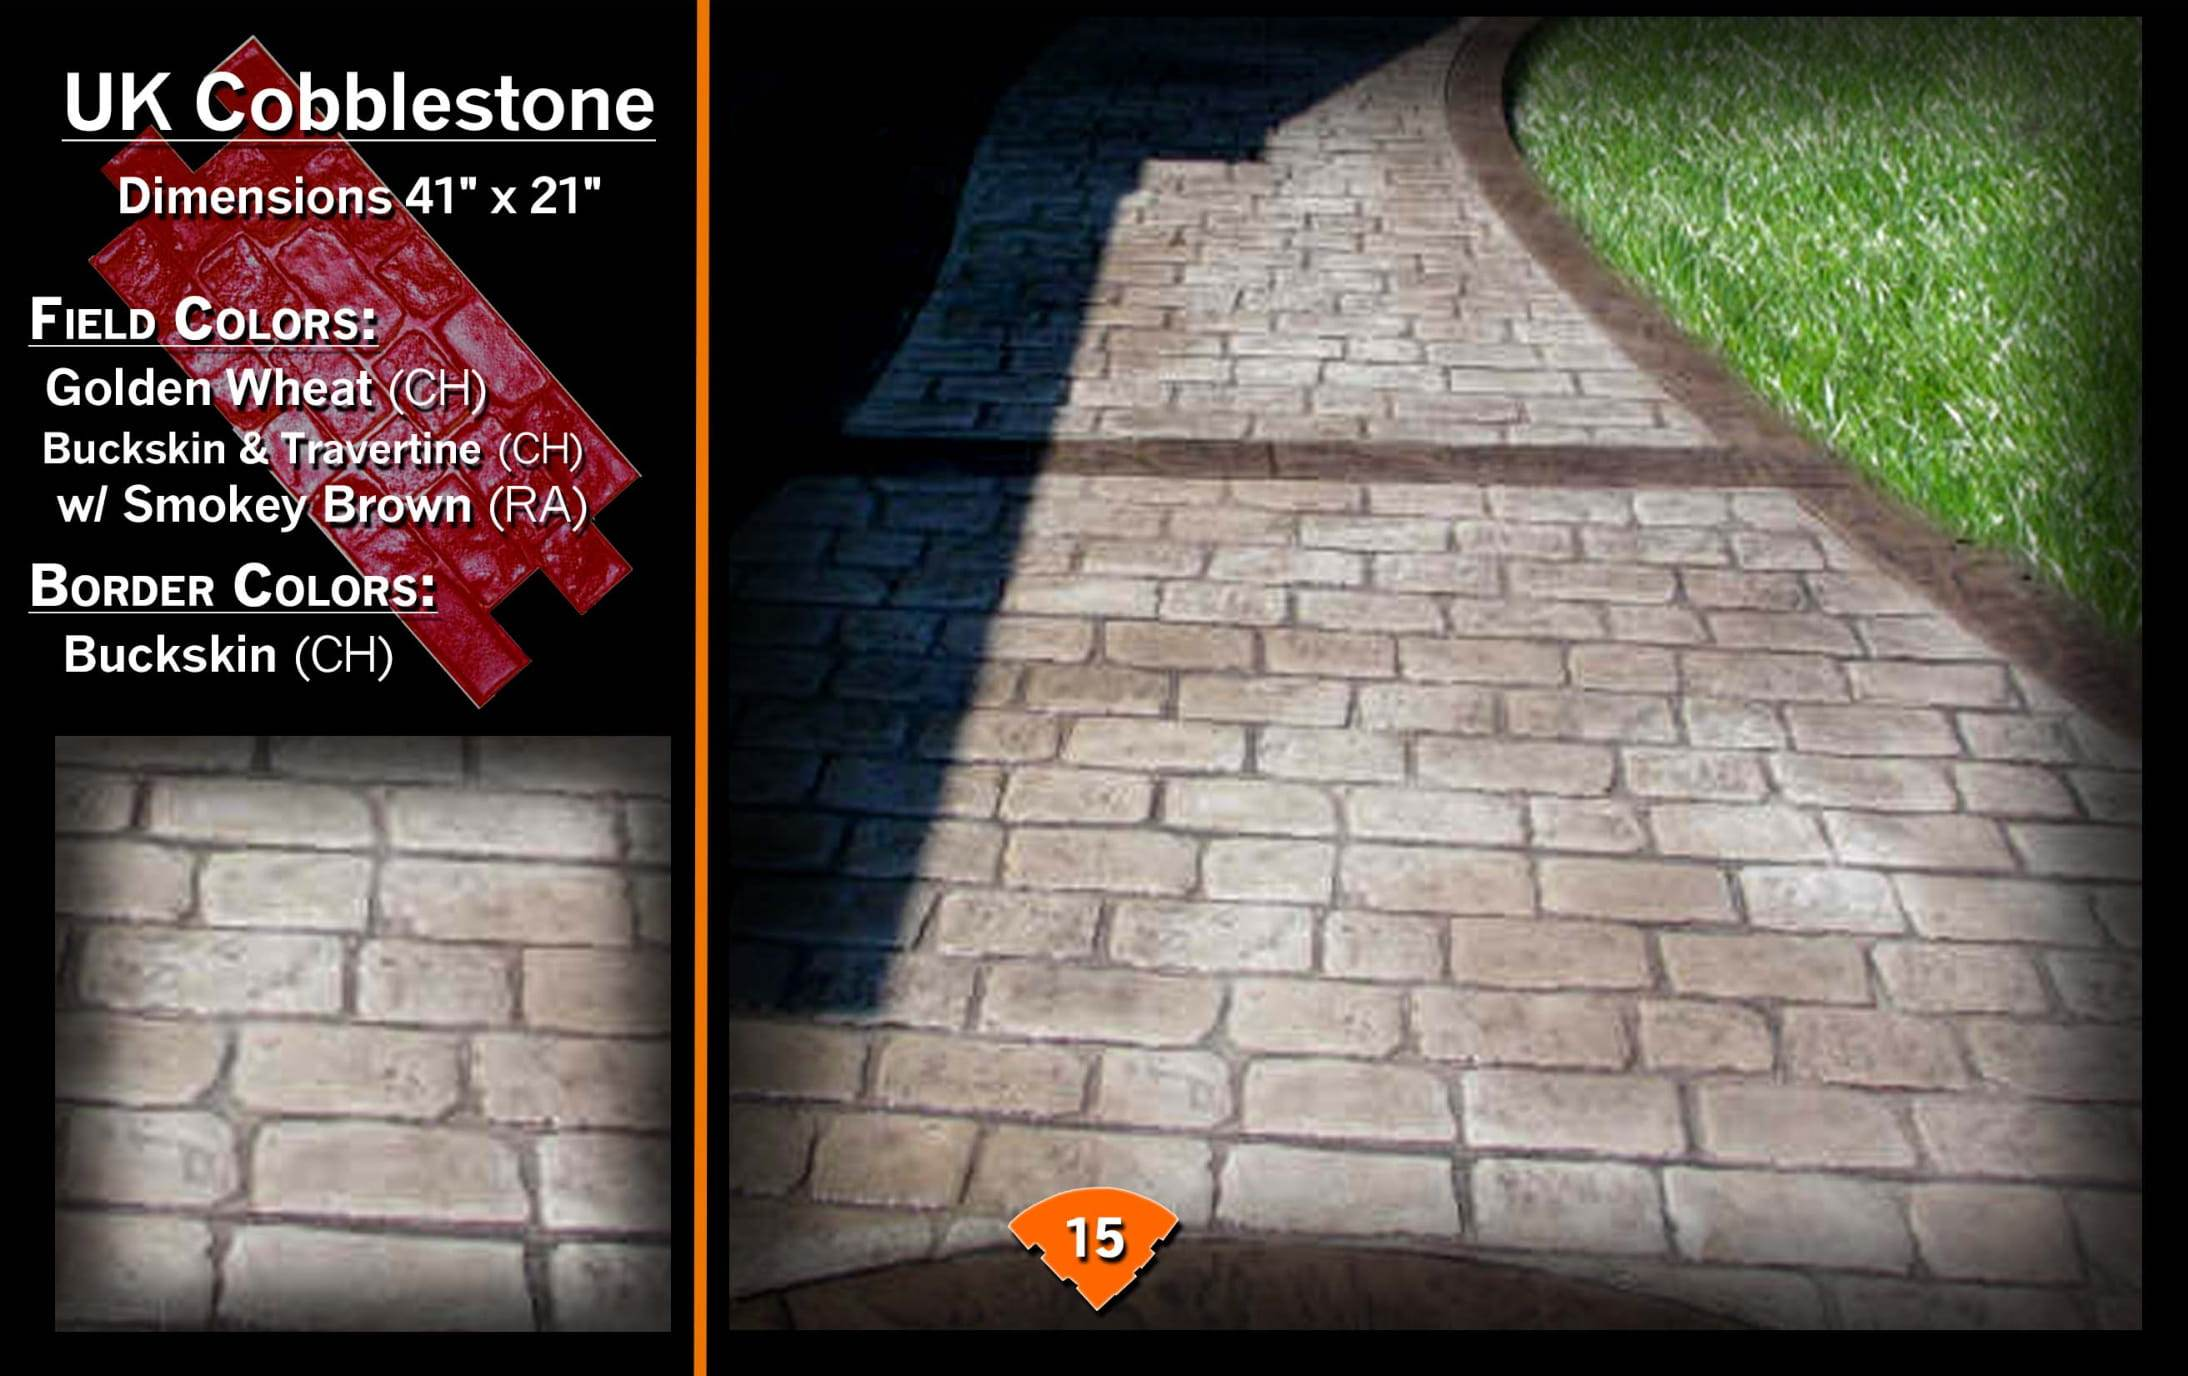 UK Cobblestone